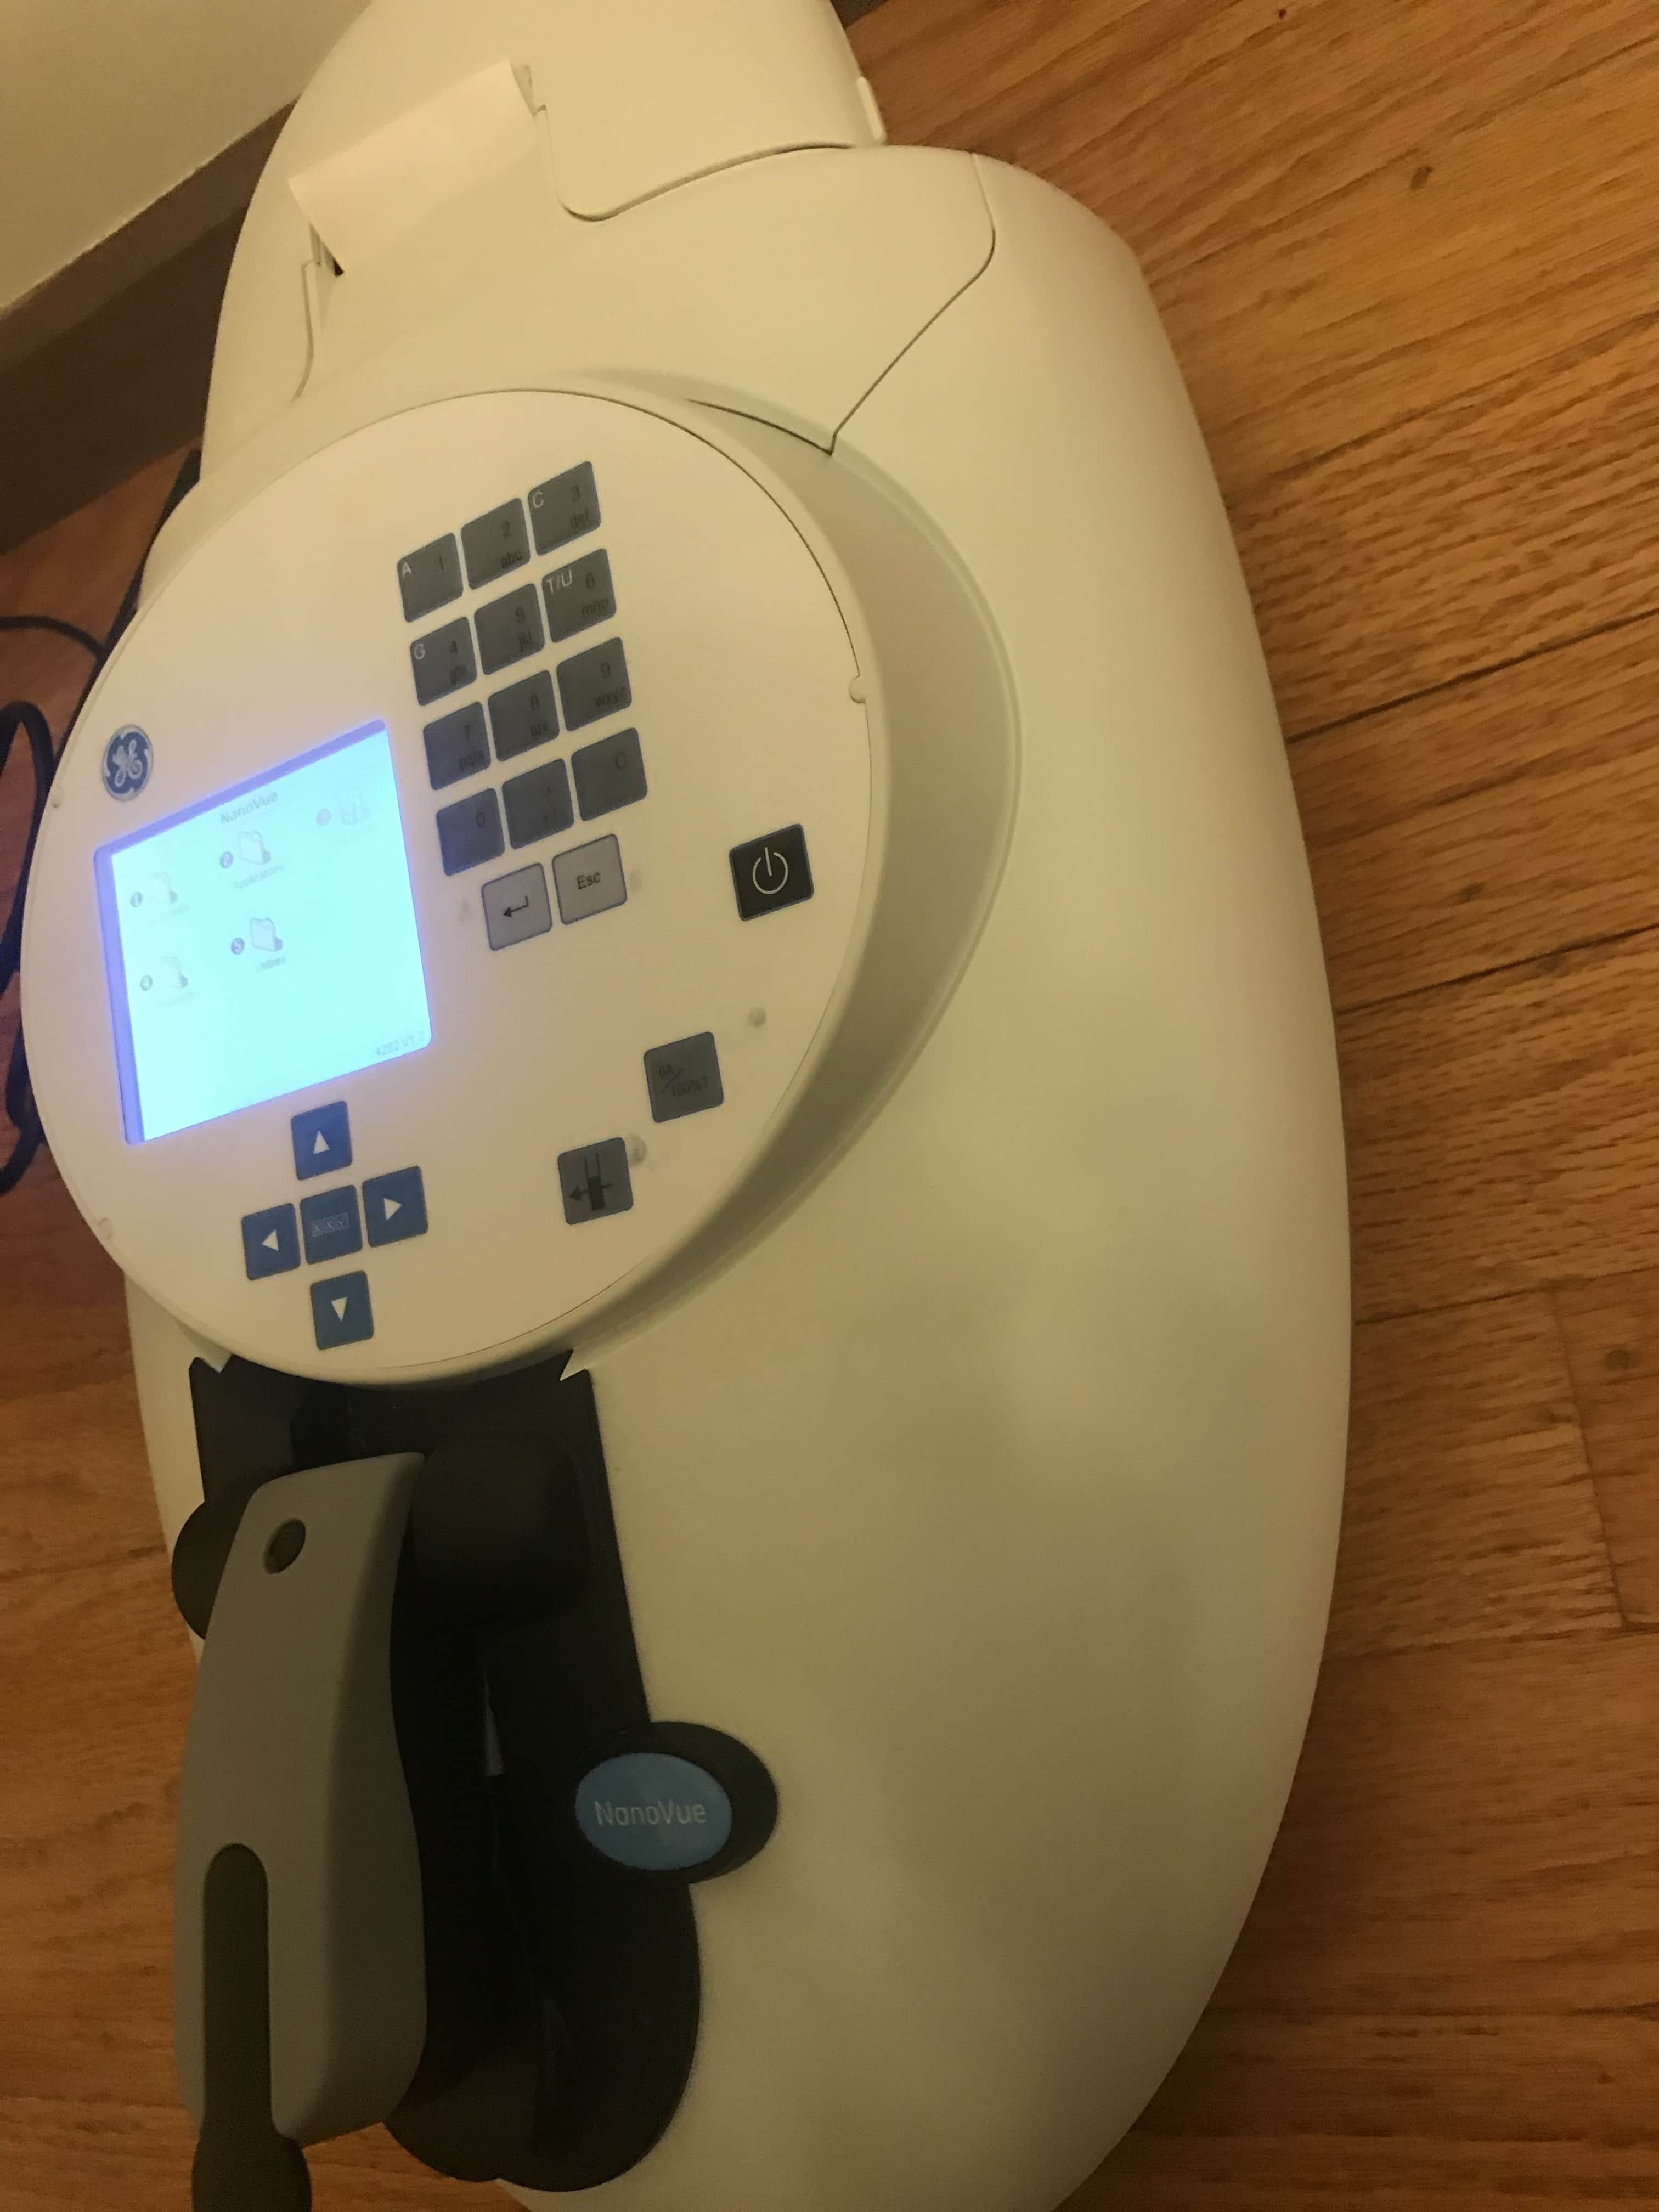 GE Healthcare NanoVue UV/Visible Spectrophotometer with Integrated Printer